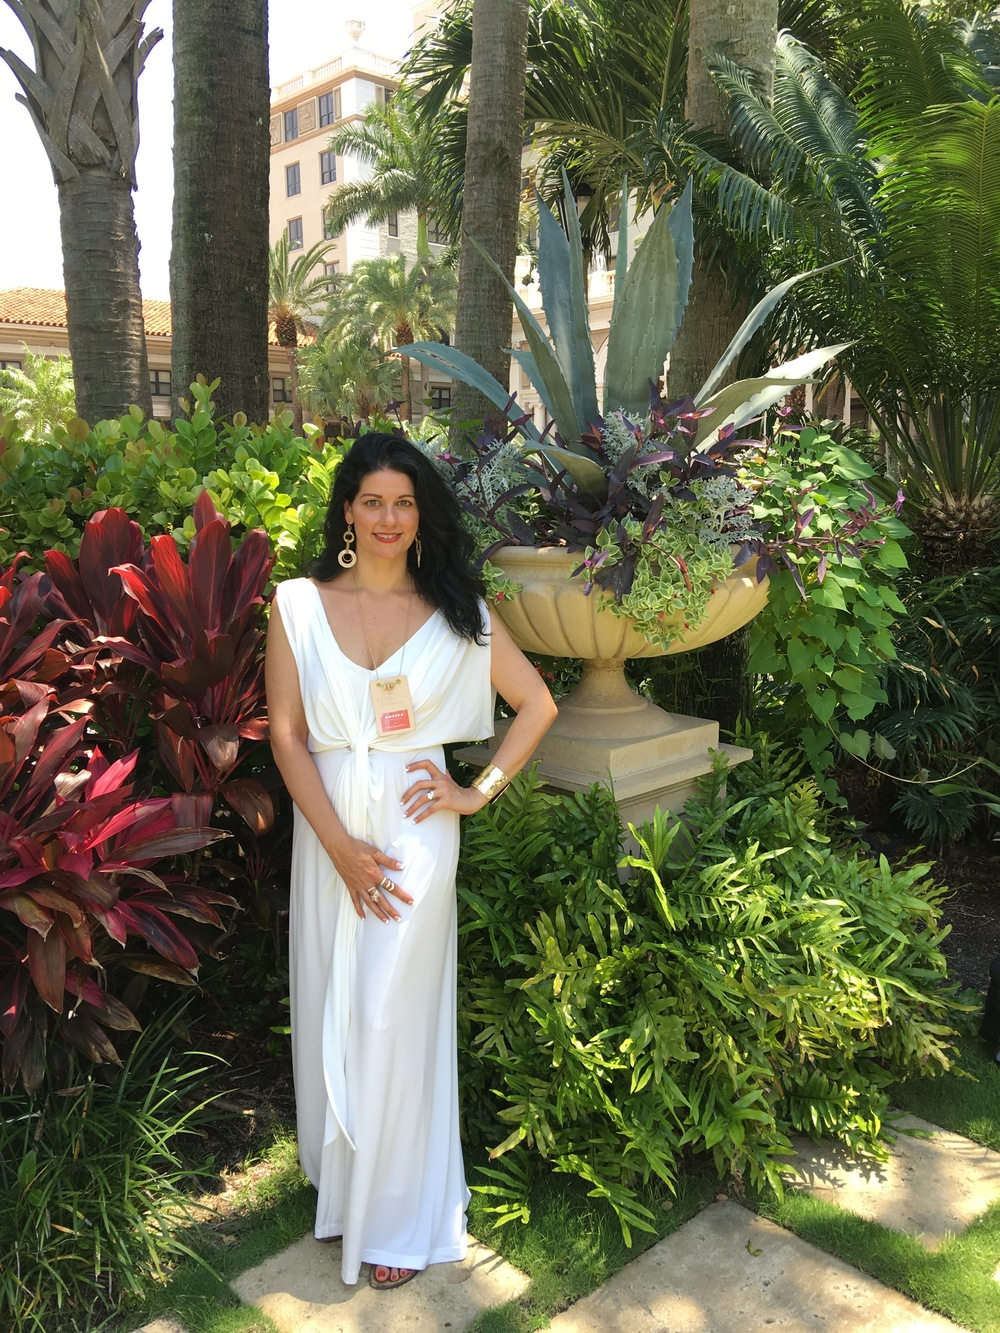 Las Vegas Wedding Planner Andrea Eppolito at the Engage White Party